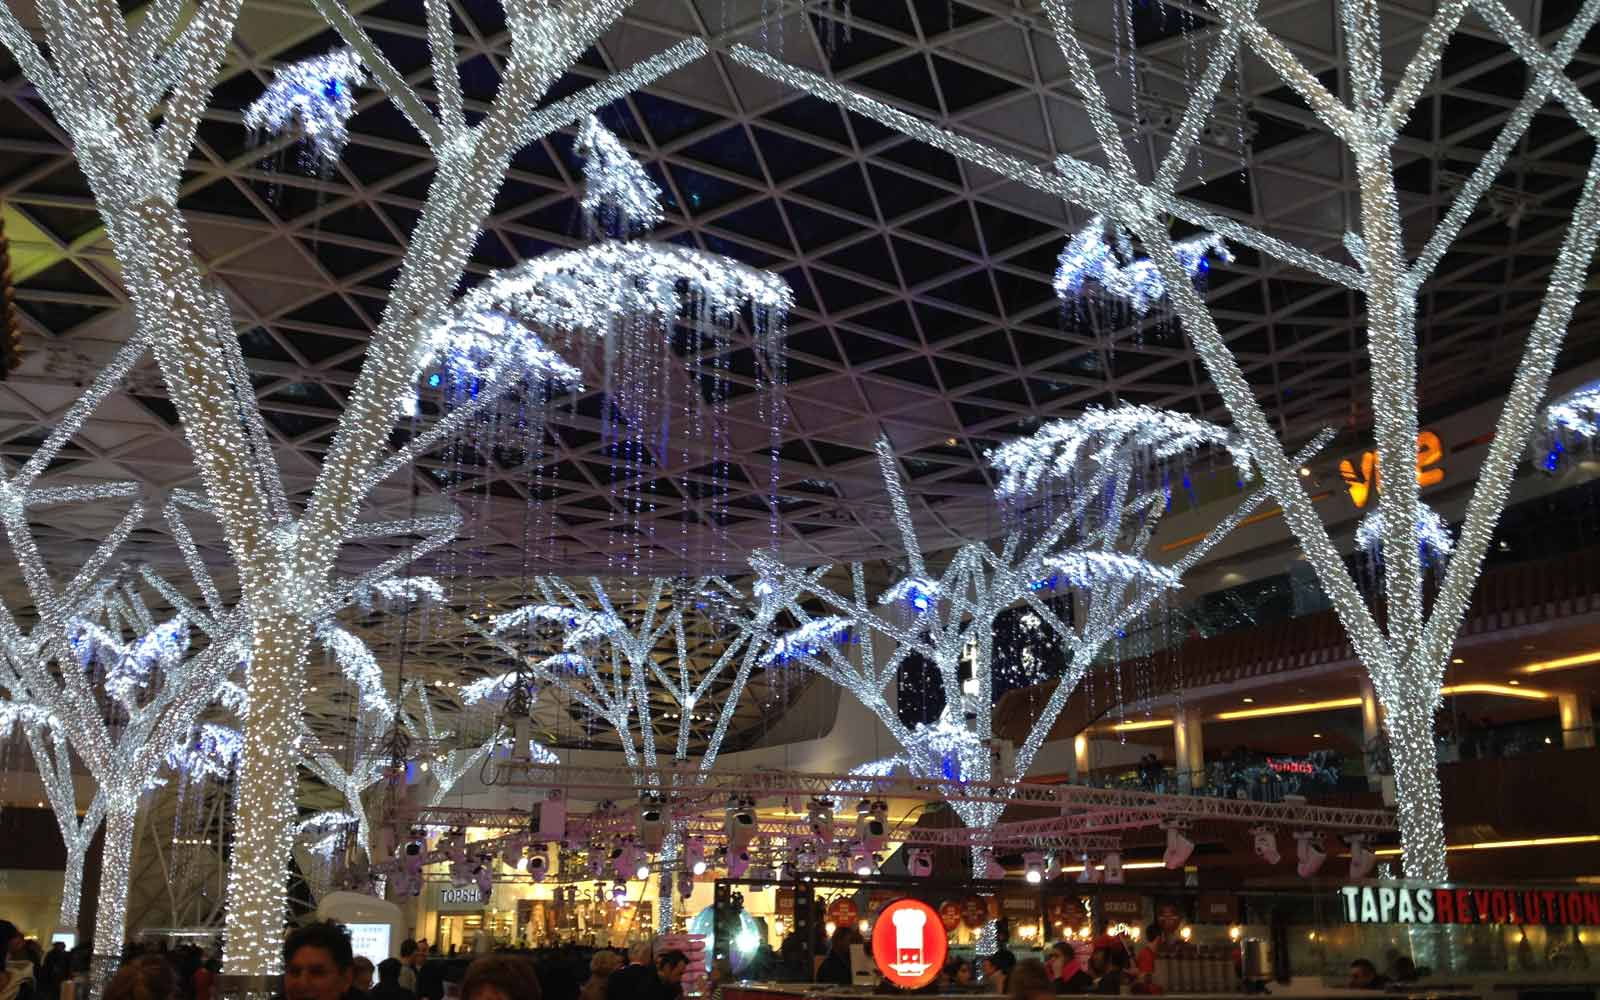 Weihnachtsbeleuchtung im Westfield Shopping-Center in London